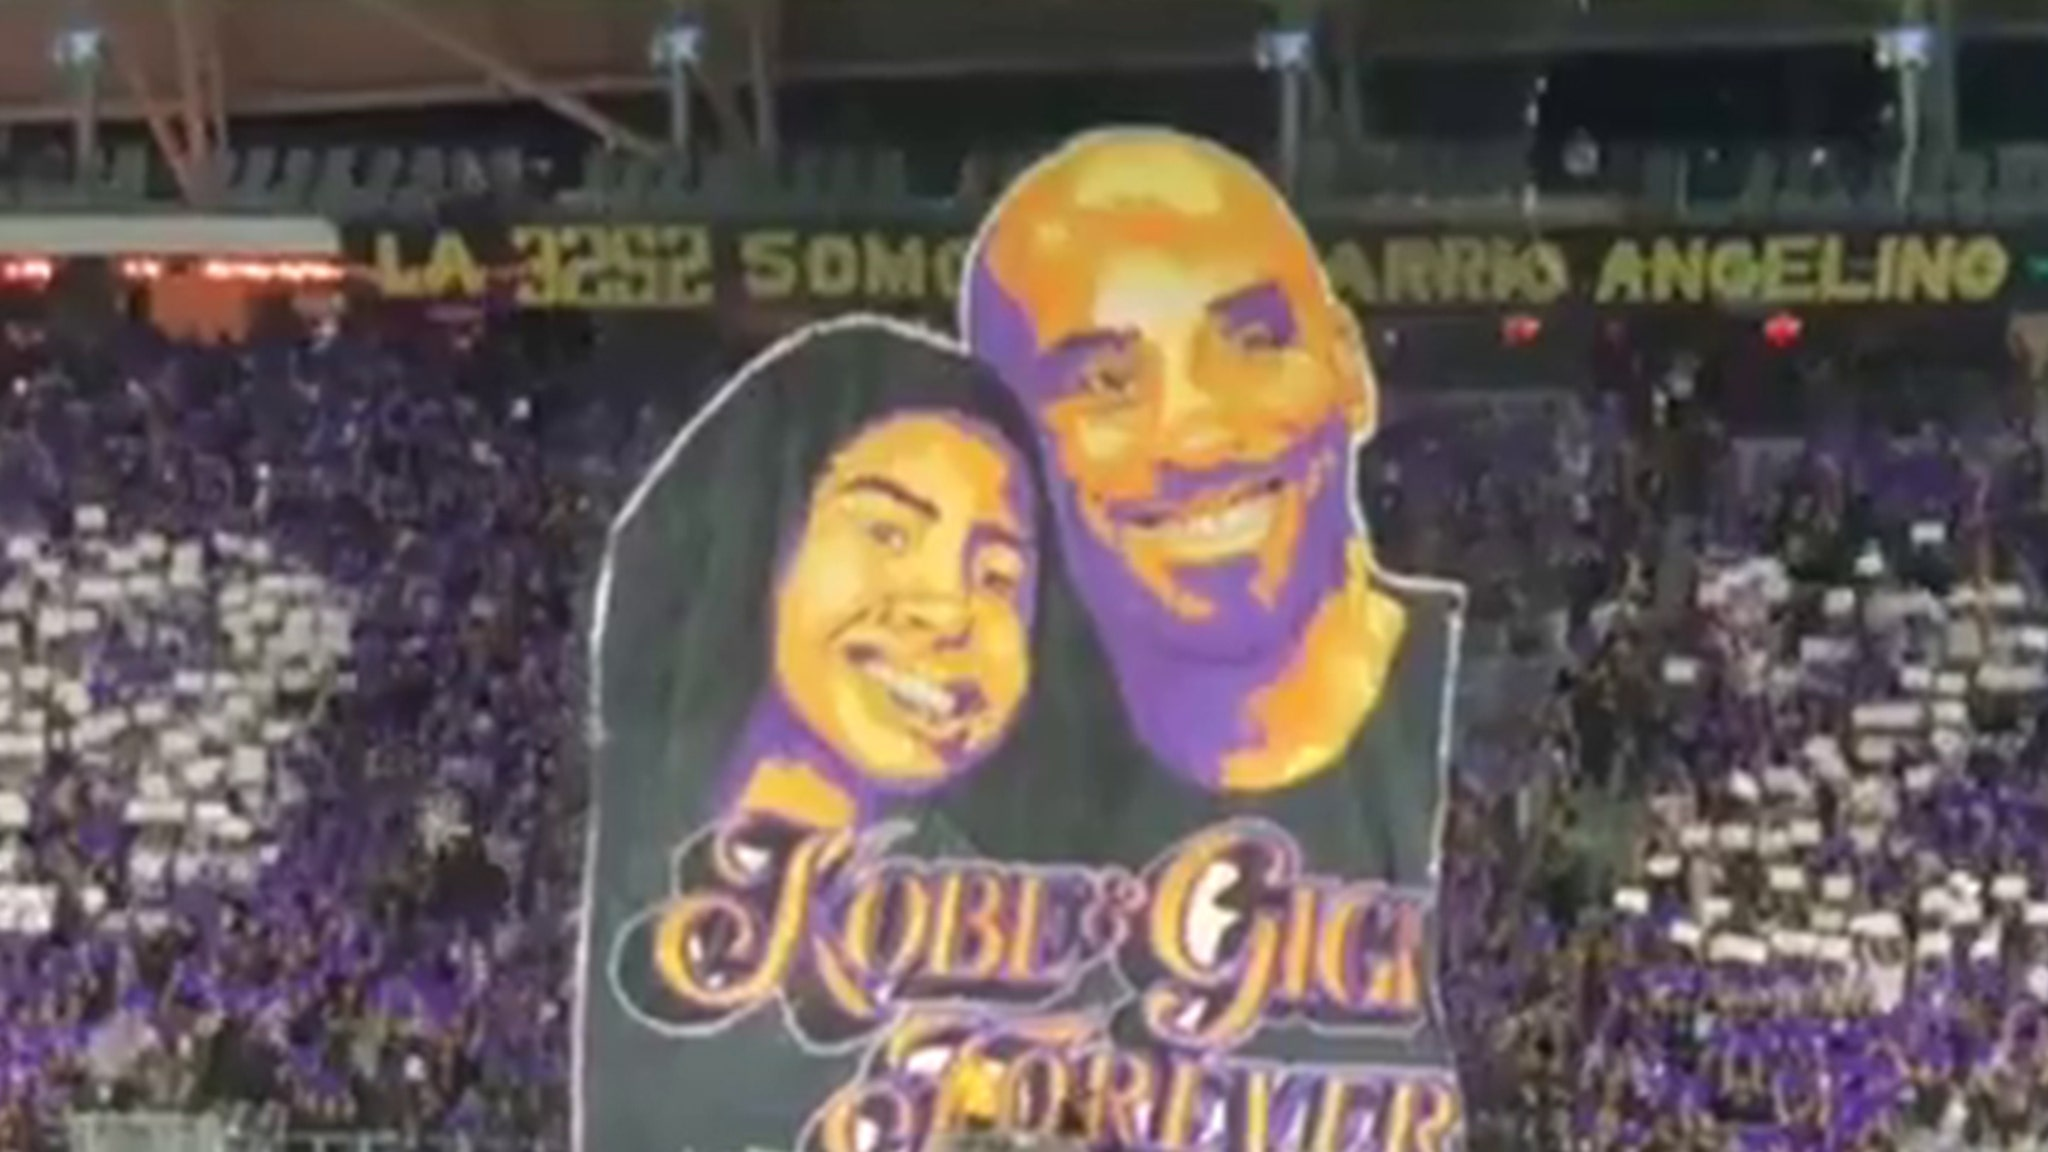 LAFC Fans Unveil Amazing Kobe And Gianna Bryant Tribute At Game